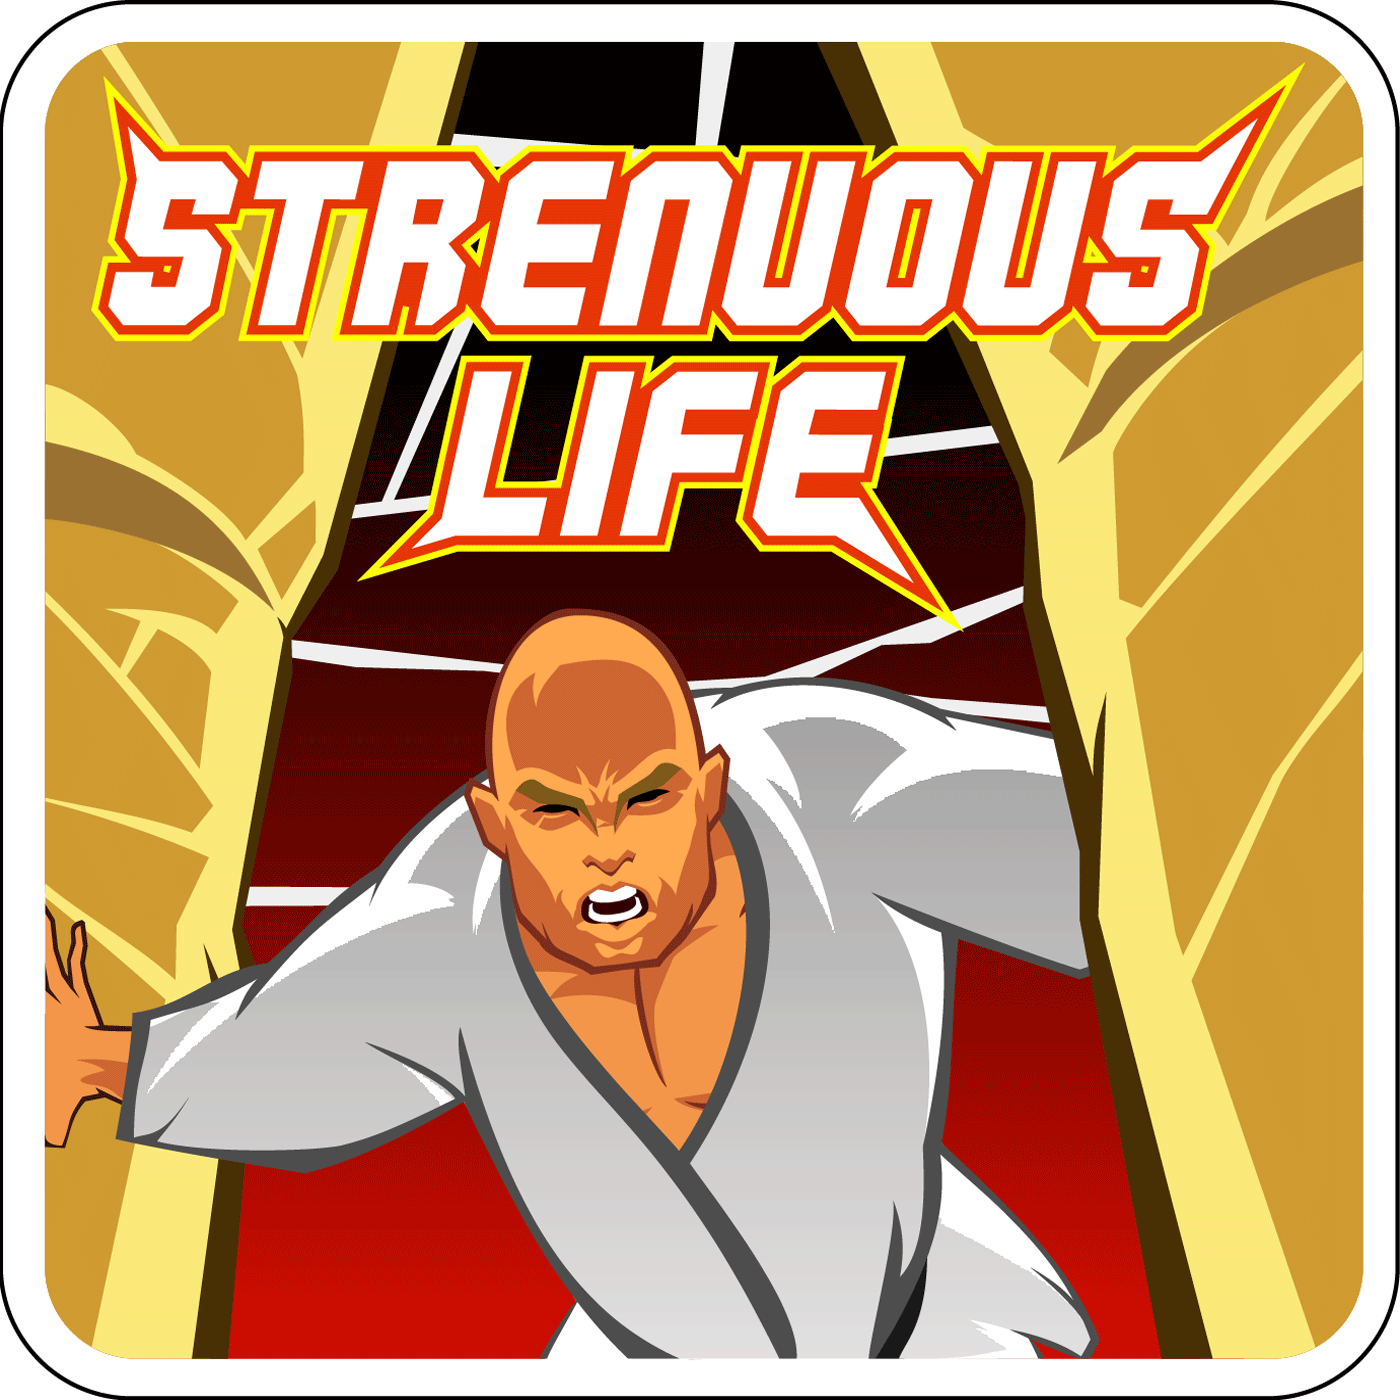 The Strenuous Life Podcast with Stephan Kesting show art